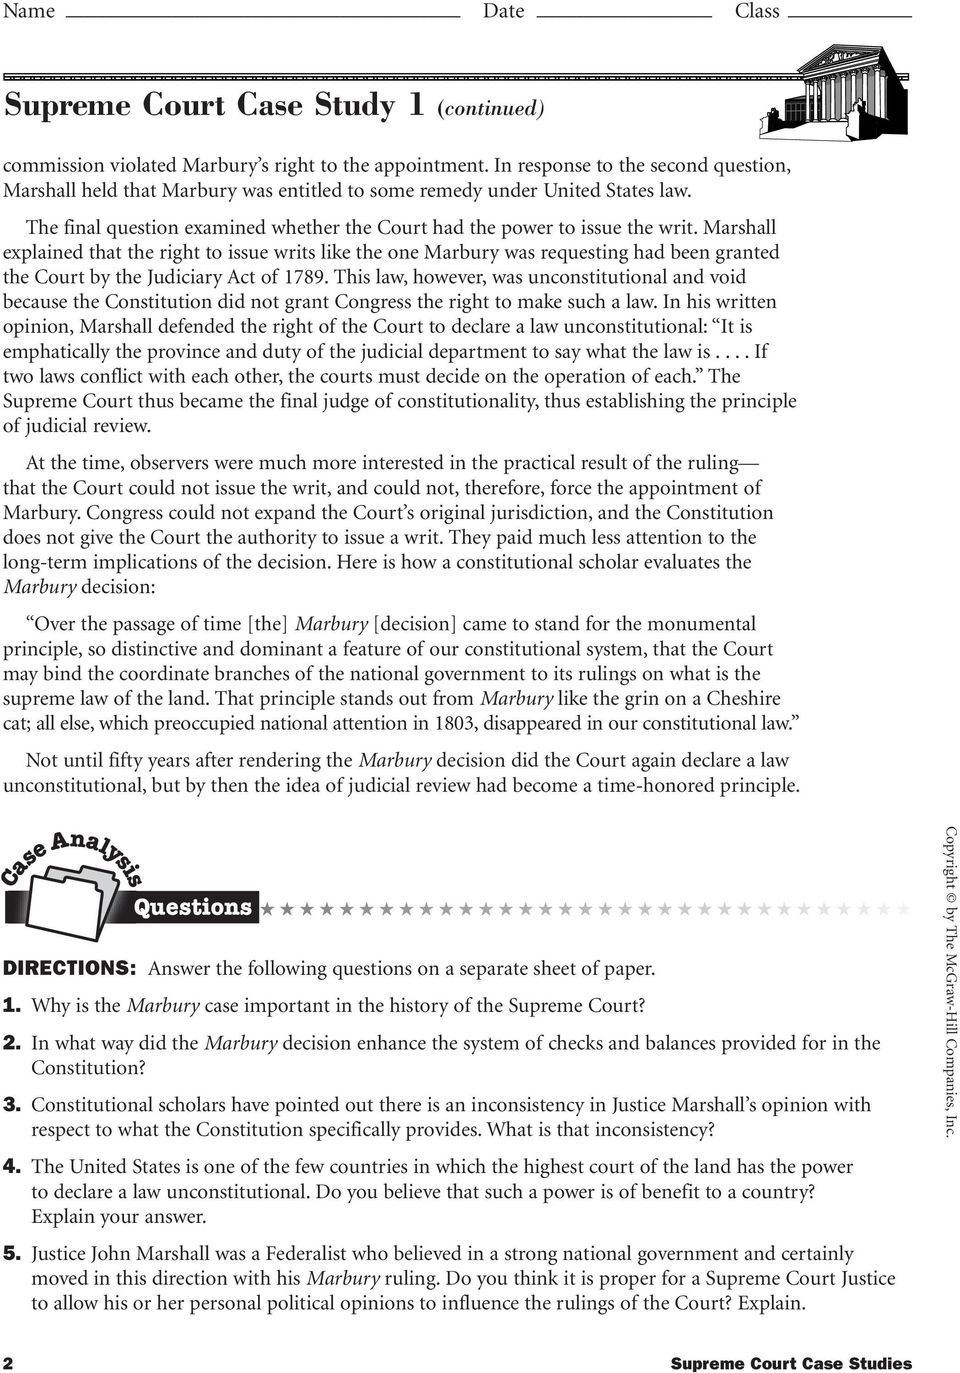 Supreme Court Case Studies Page  Supreme Court Case Studies